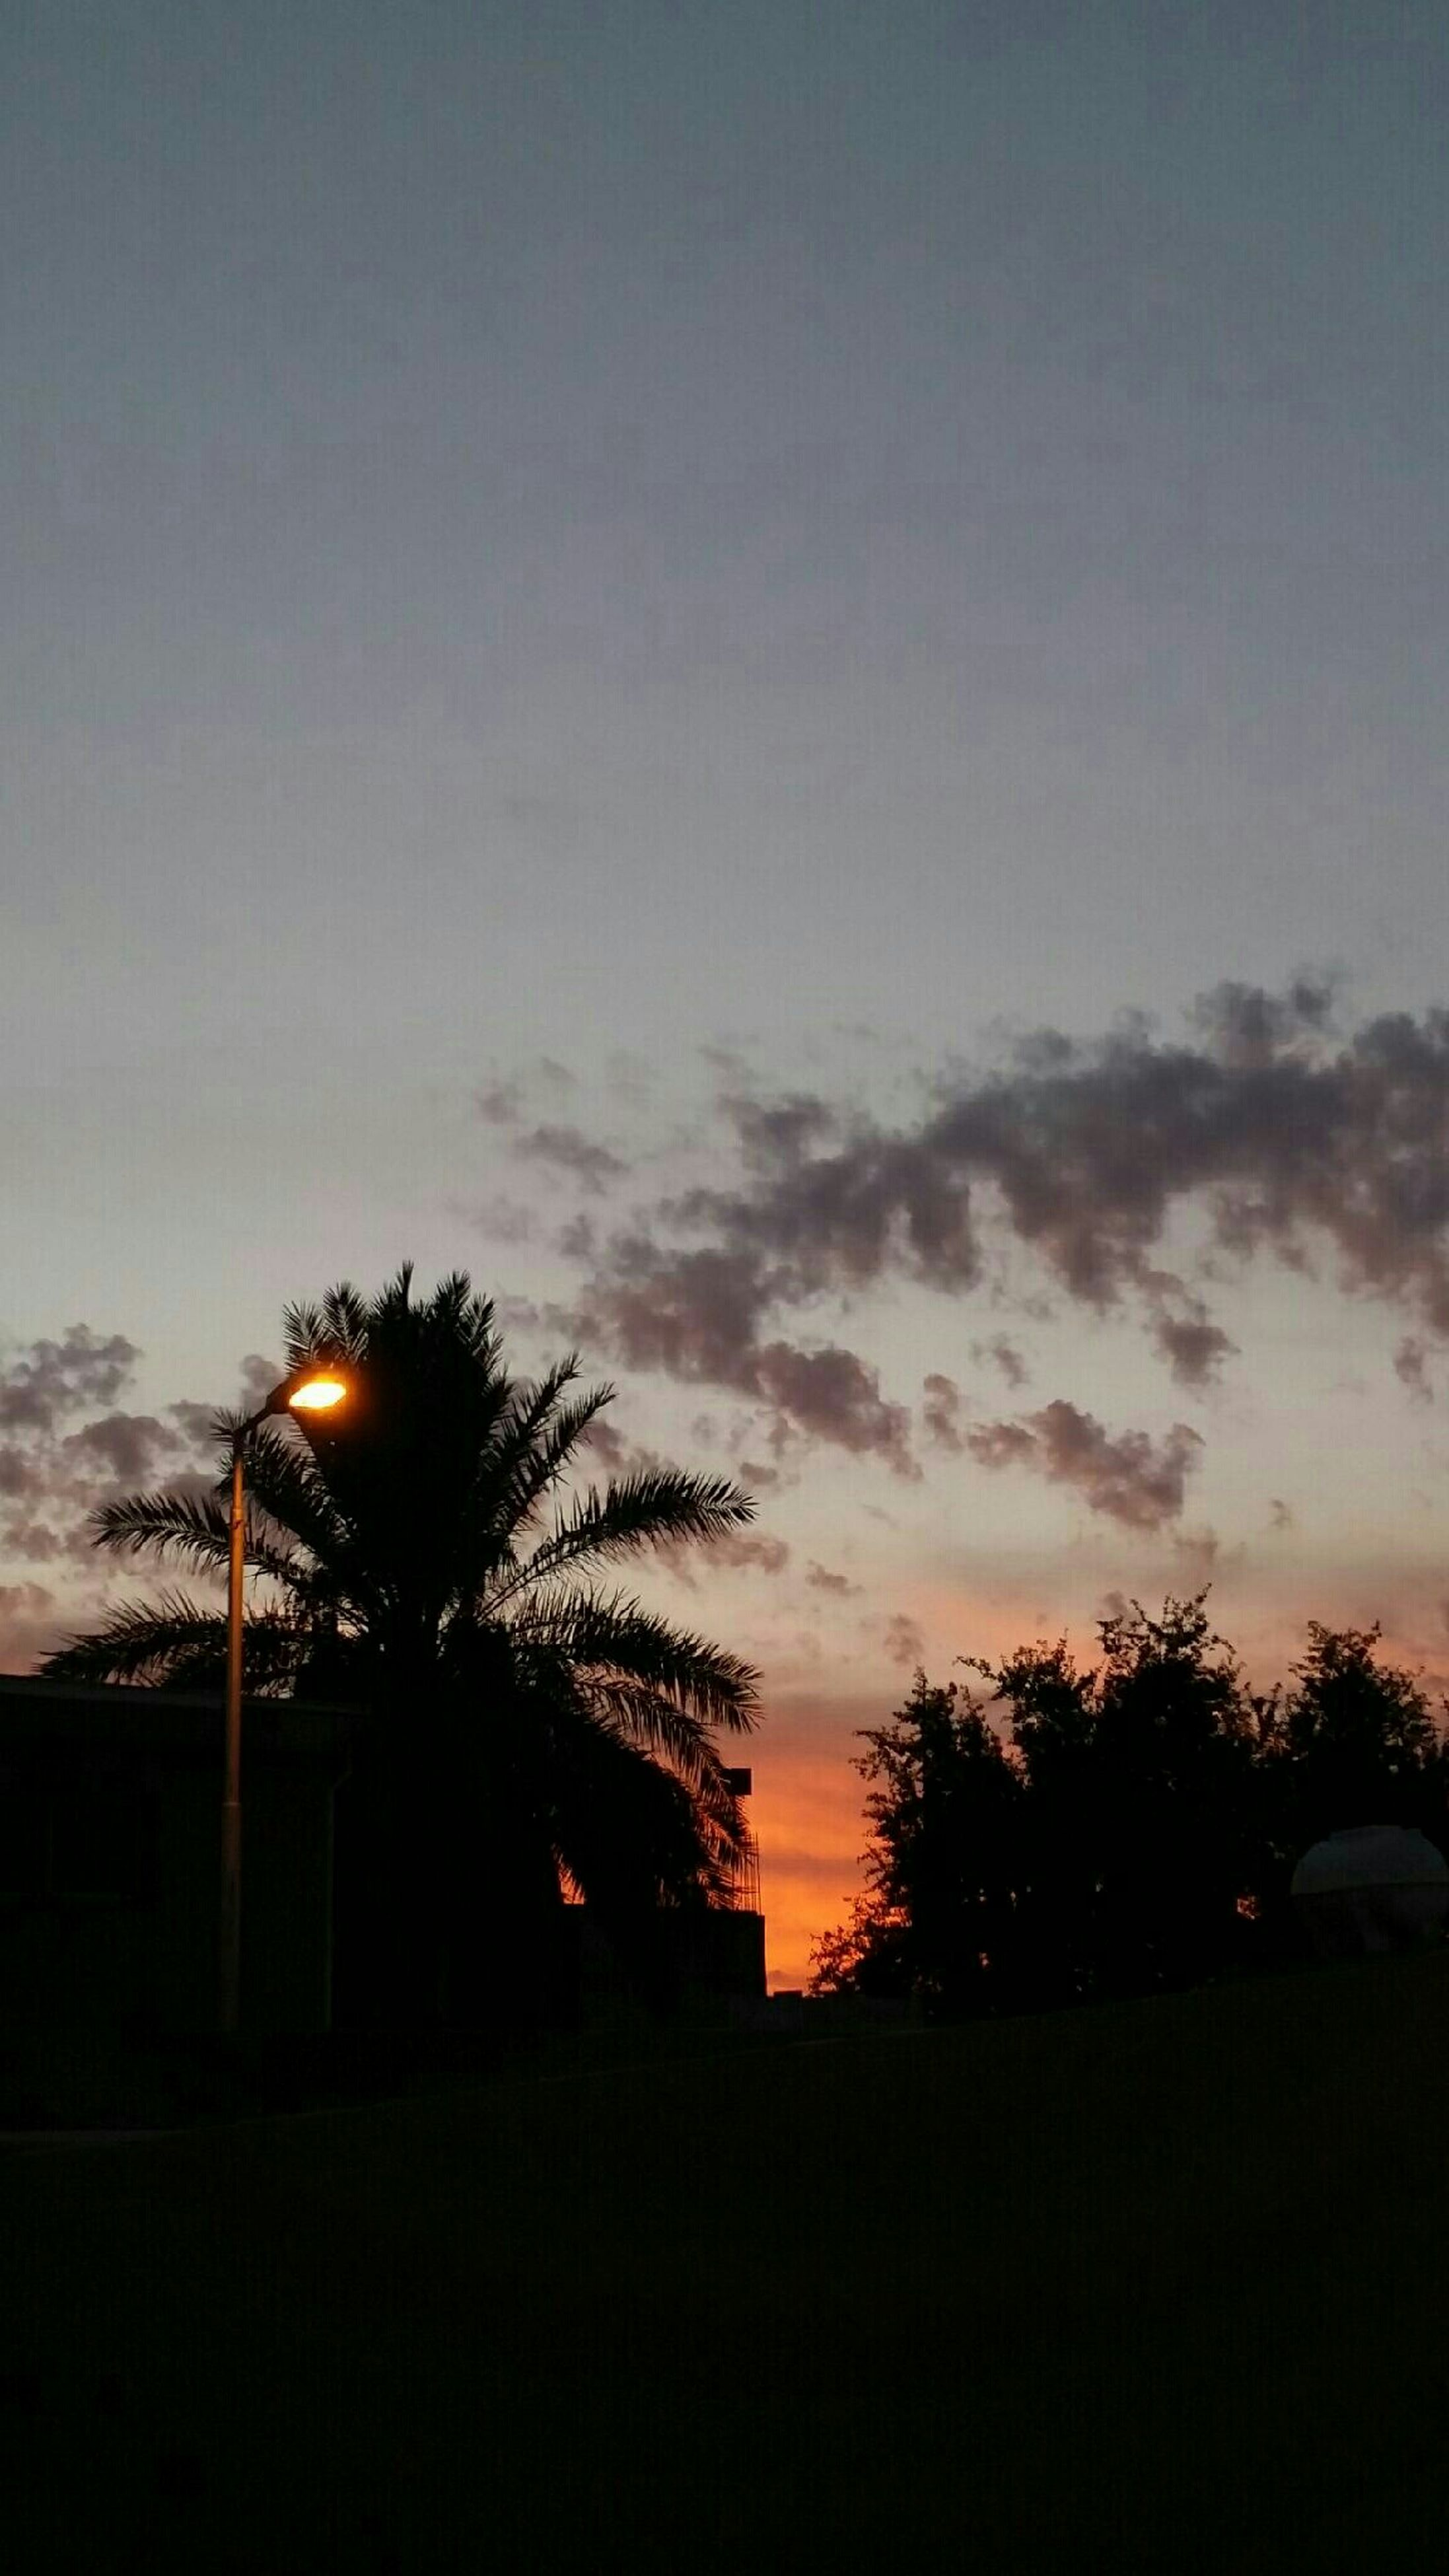 silhouette, sunset, sky, tree, low angle view, beauty in nature, tranquility, dusk, nature, scenics, dark, cloud - sky, tranquil scene, built structure, growth, outdoors, copy space, outline, architecture, orange color